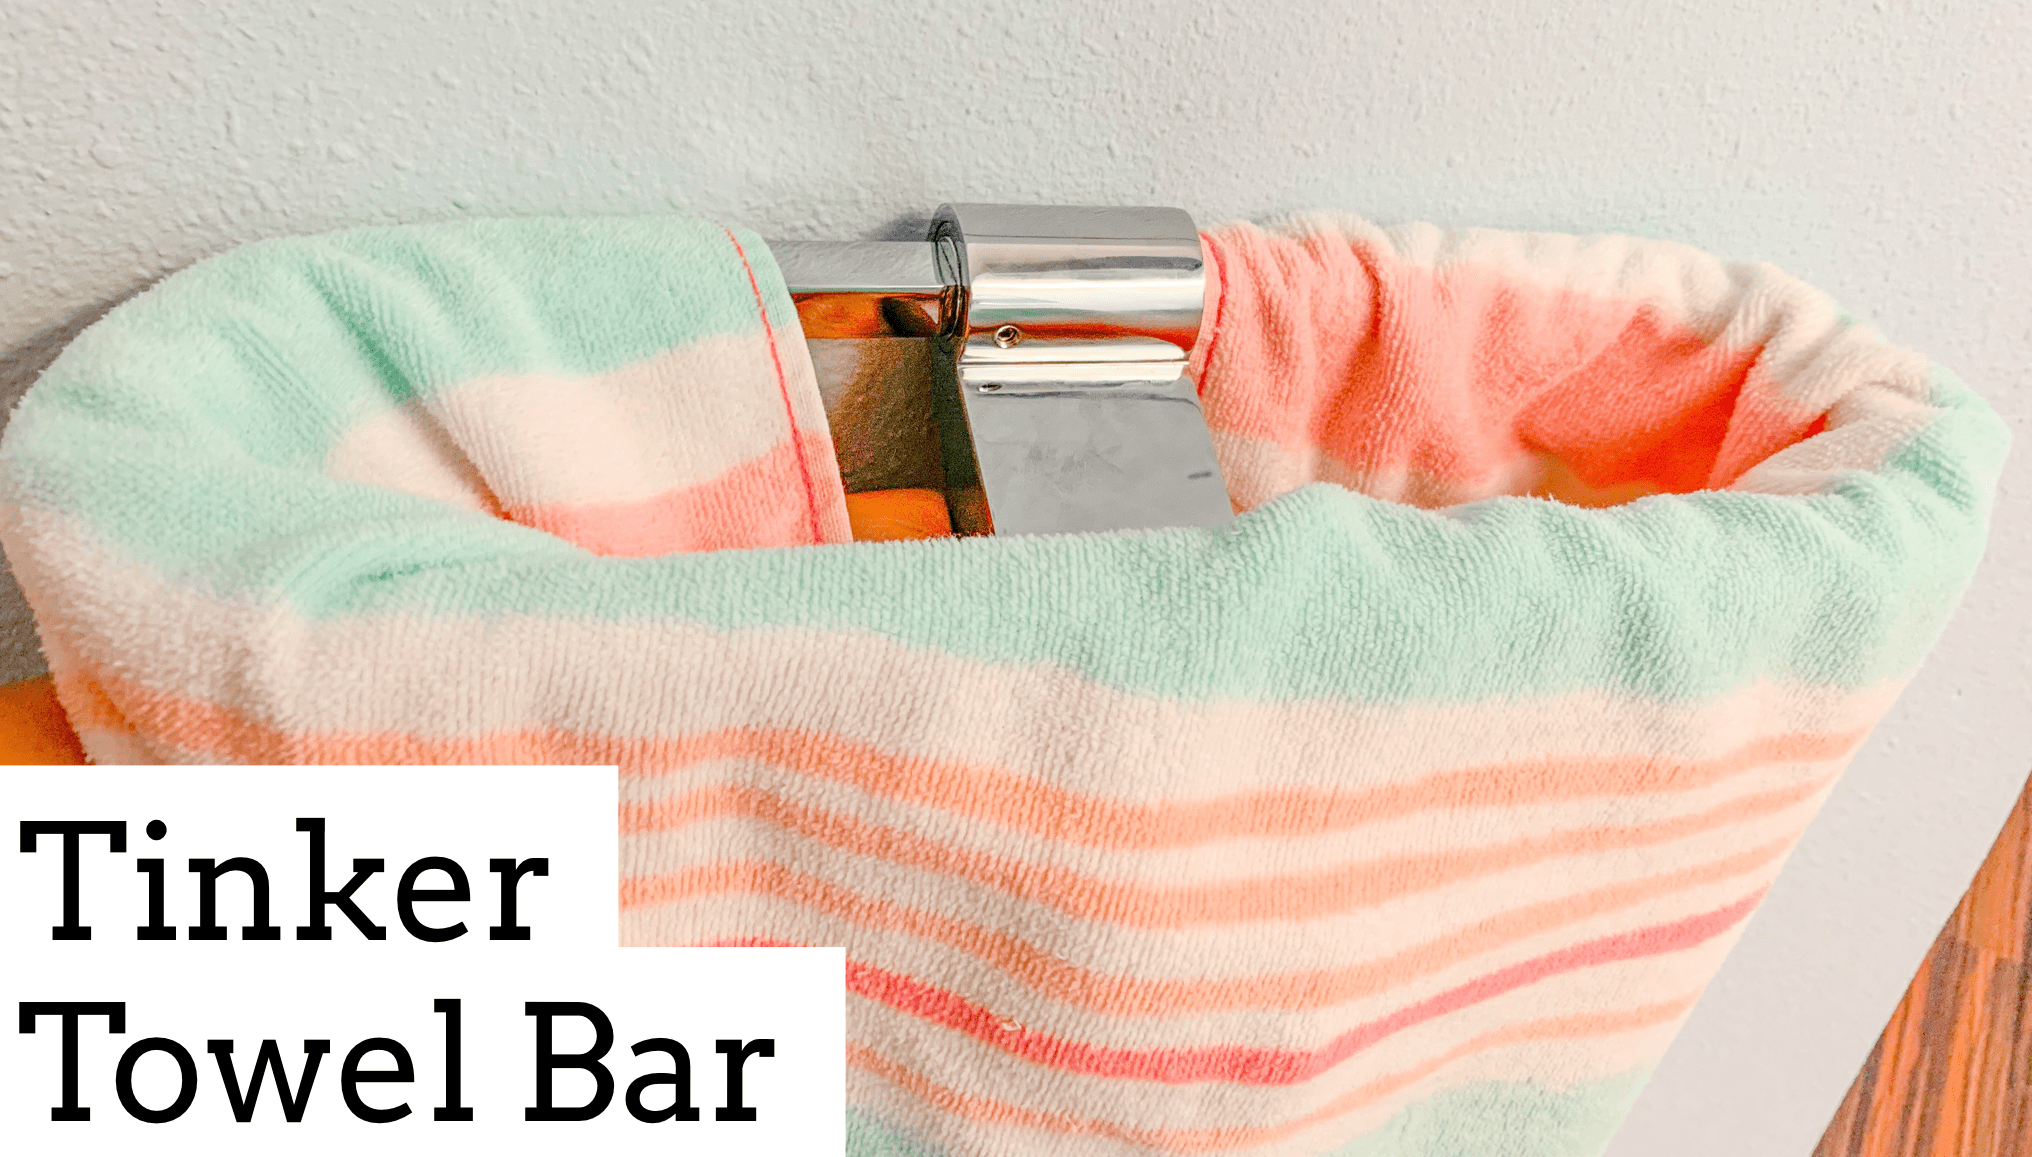 b590810570b Tinker Towel Bar is a genius oval design that lets the entire towel dry out  quickly.